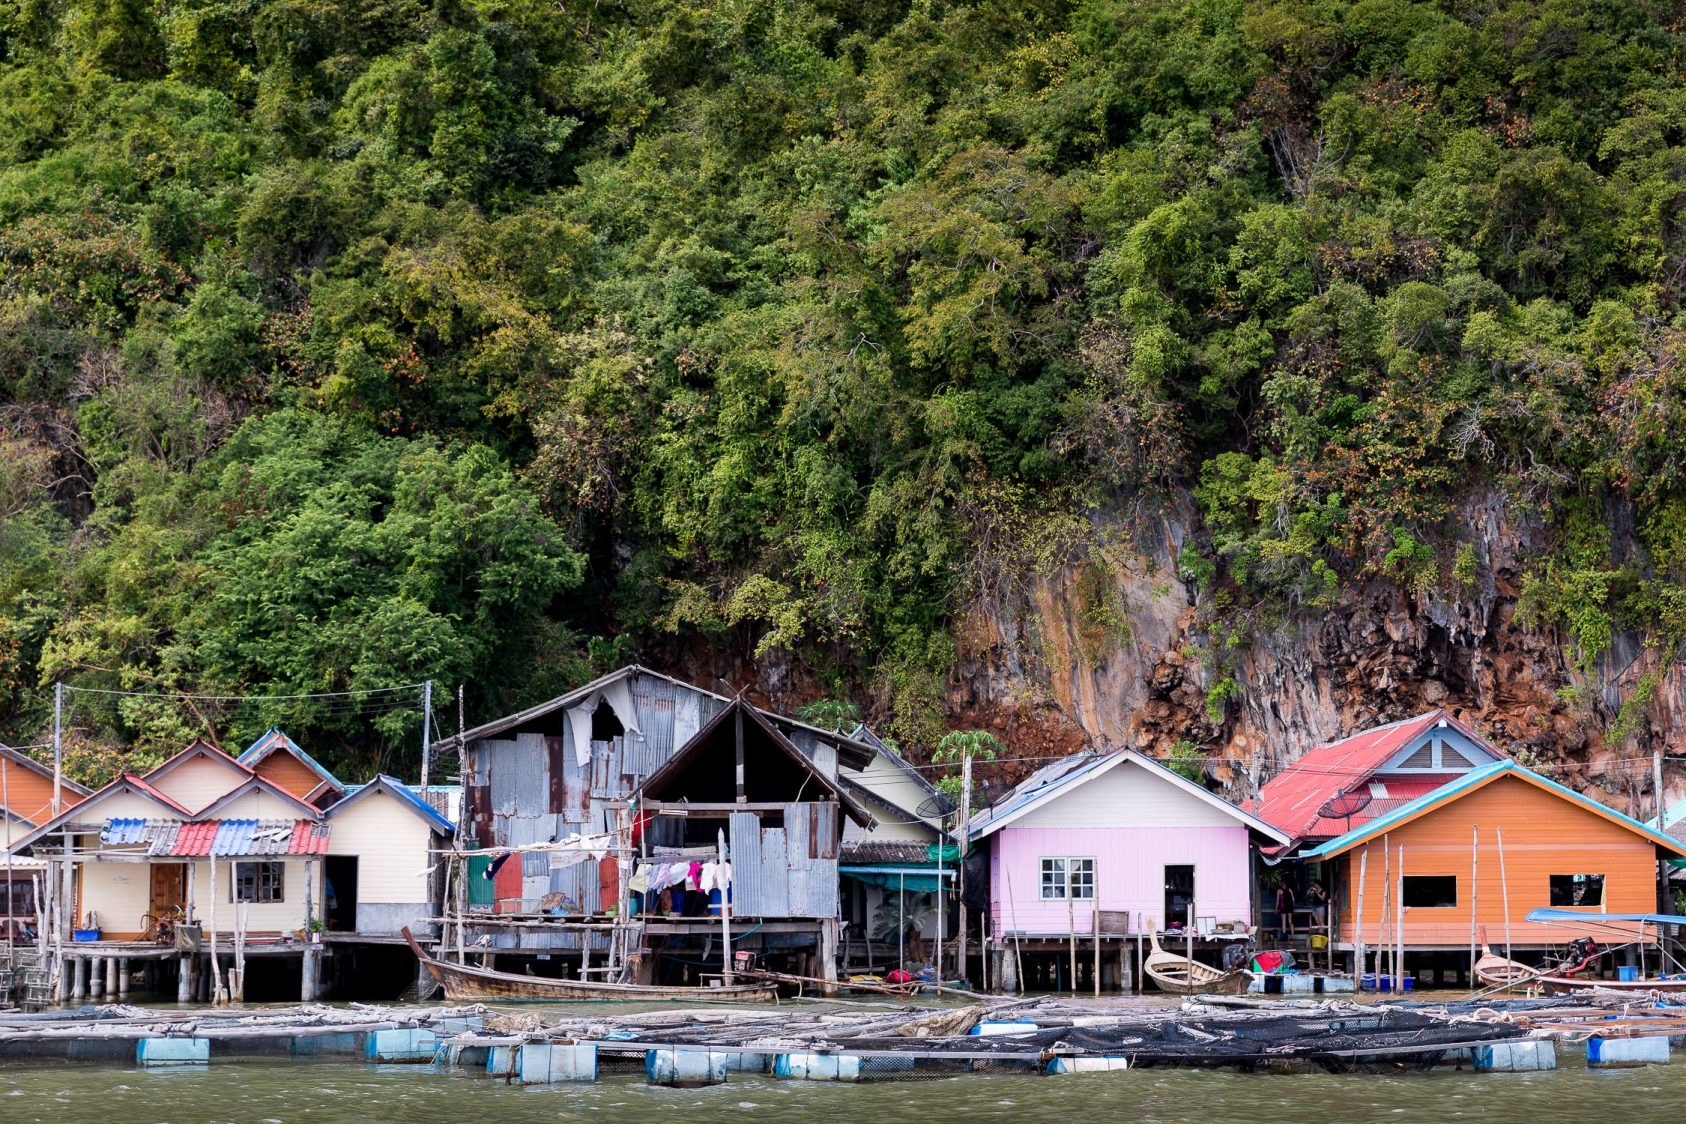 Colorful floating houses below a green jungle in the floating village of koh panyee in Thailand.